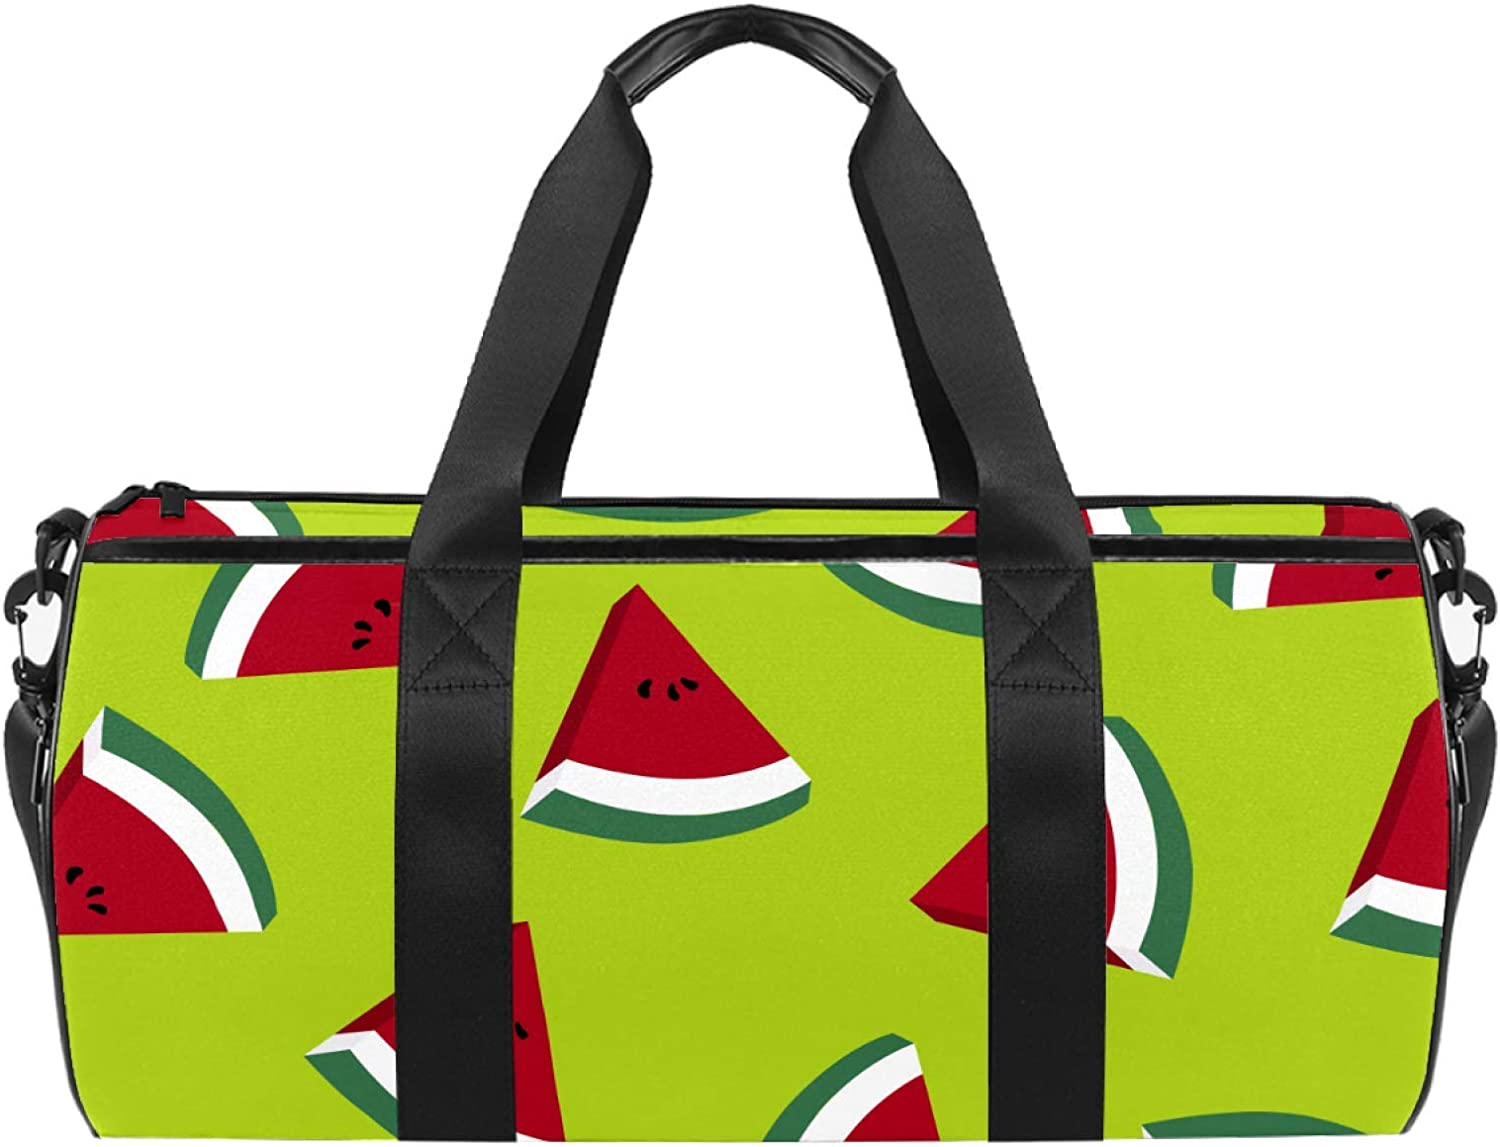 Shoulder Handy Sports Gym Bags Travel Bag for 5 ☆ popular Duffle Totes W Max 45% OFF Men